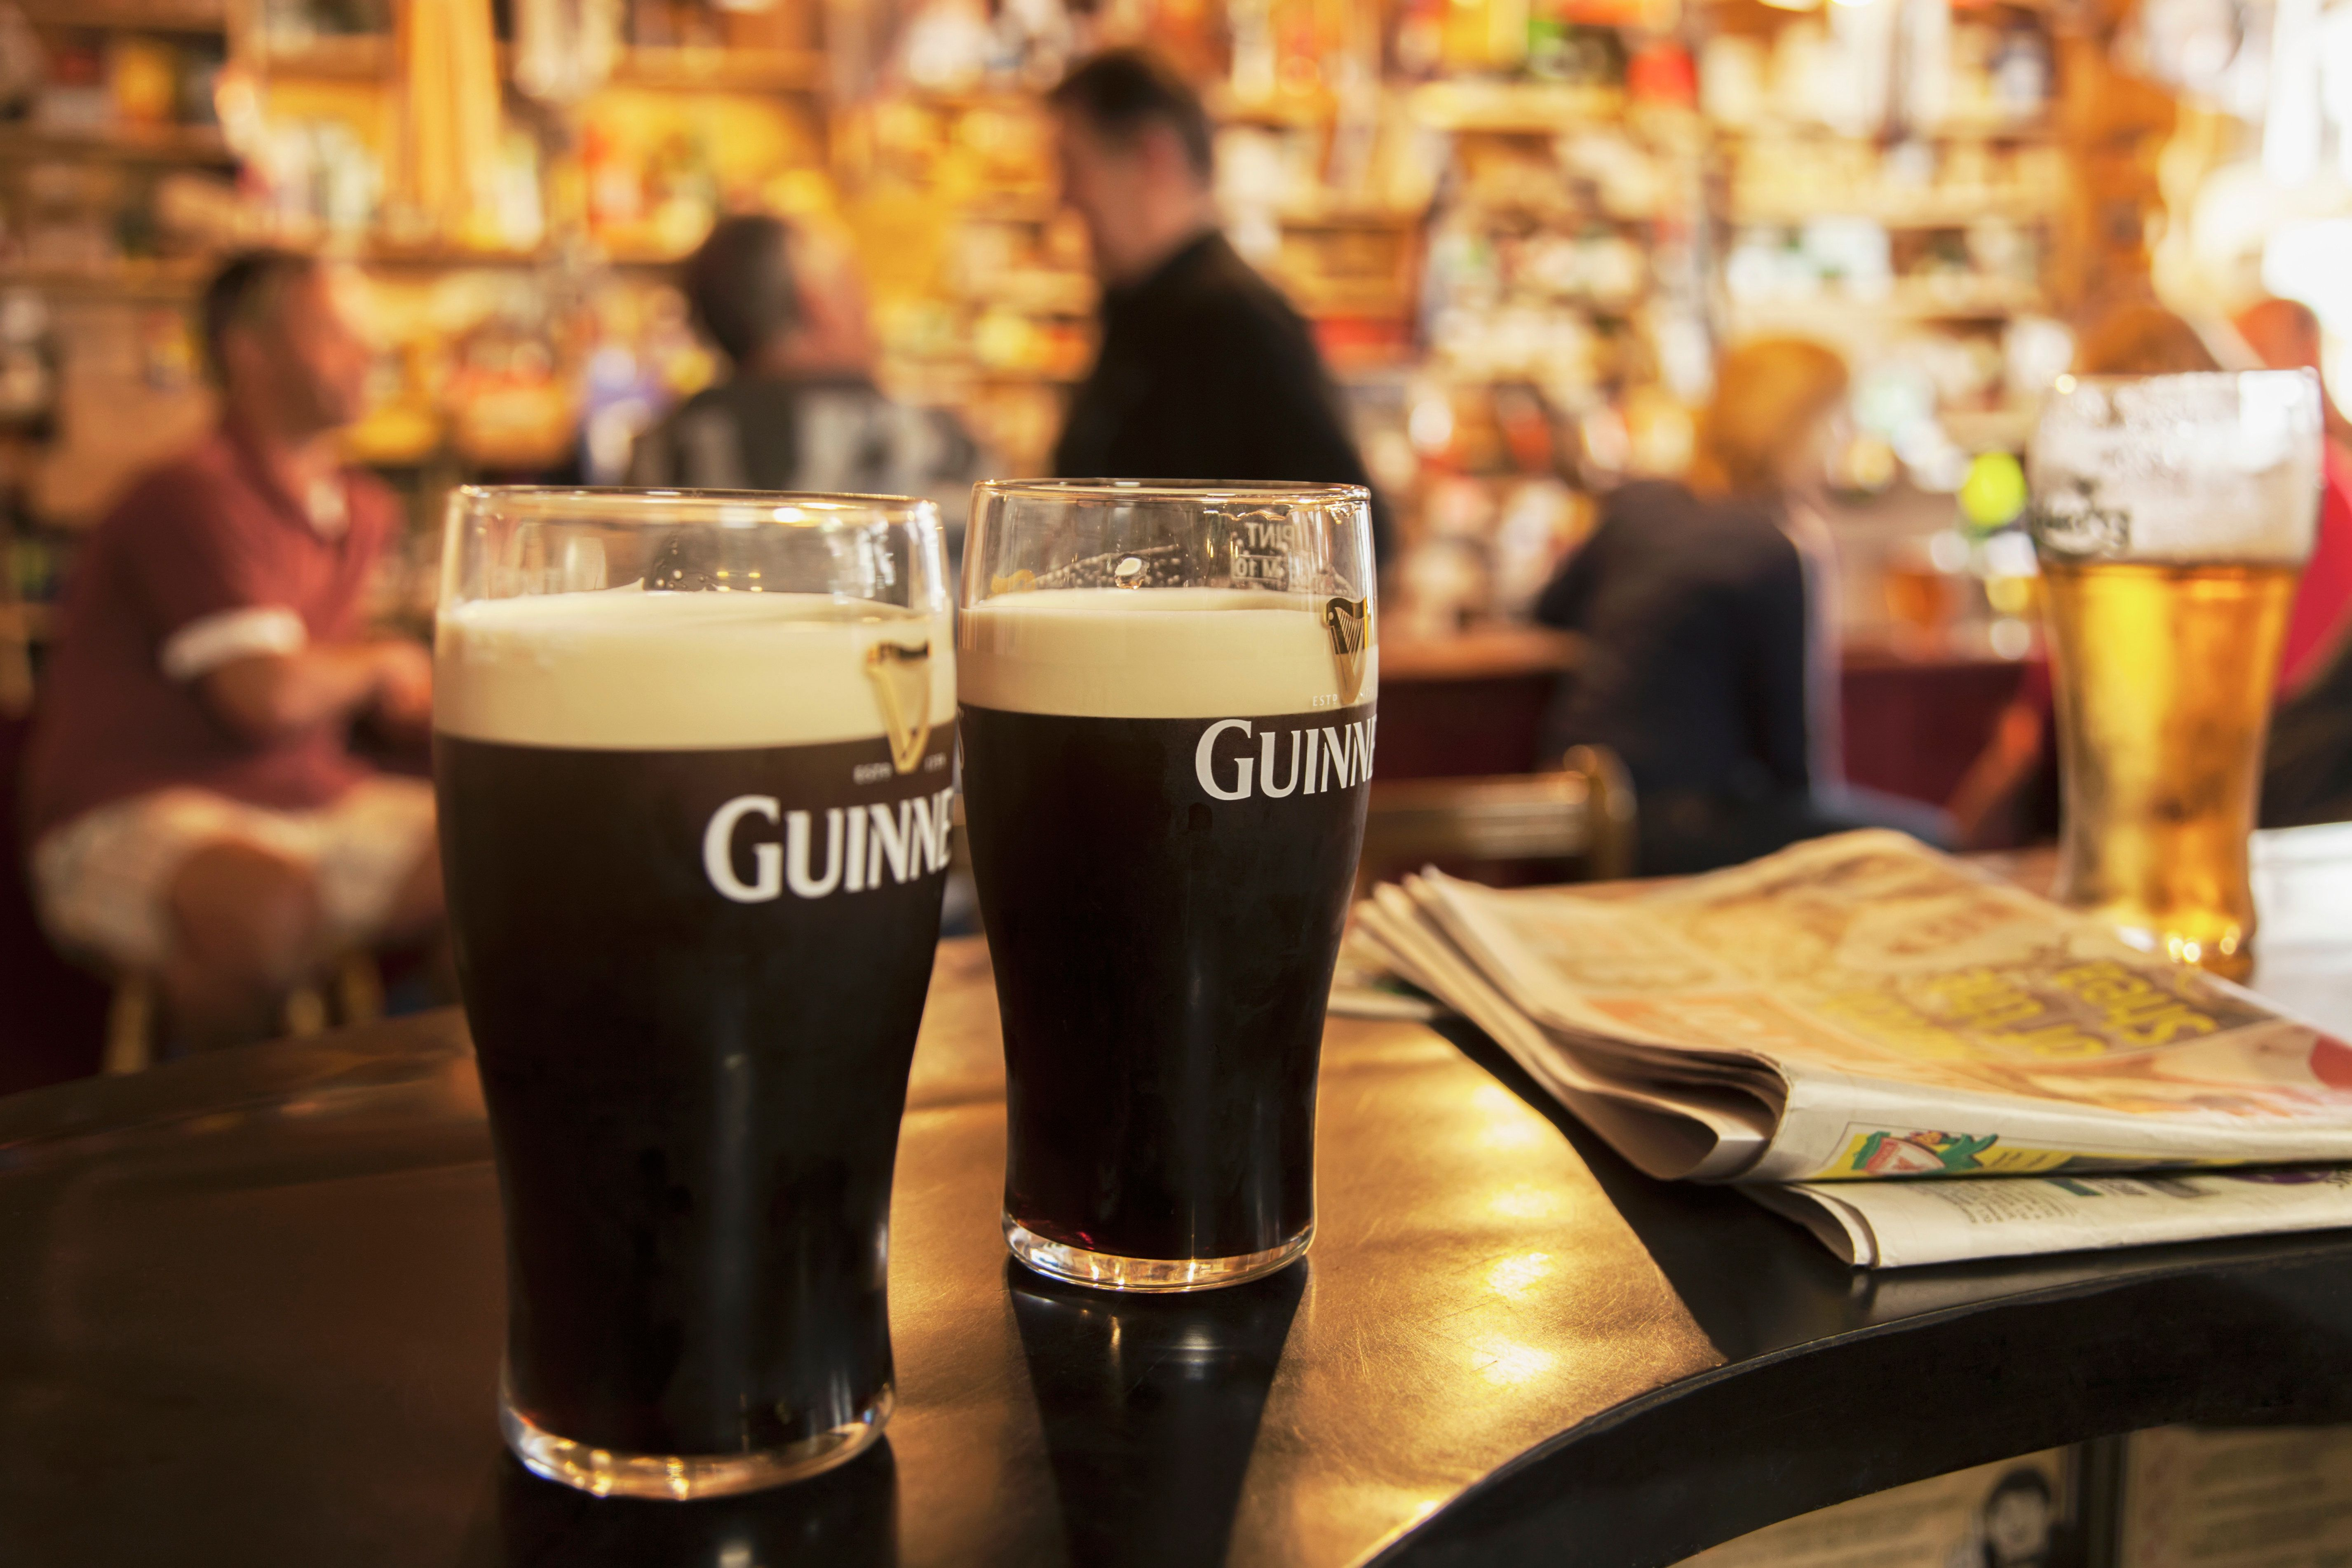 Fact: Guinness Beer Is Actually Red, Not